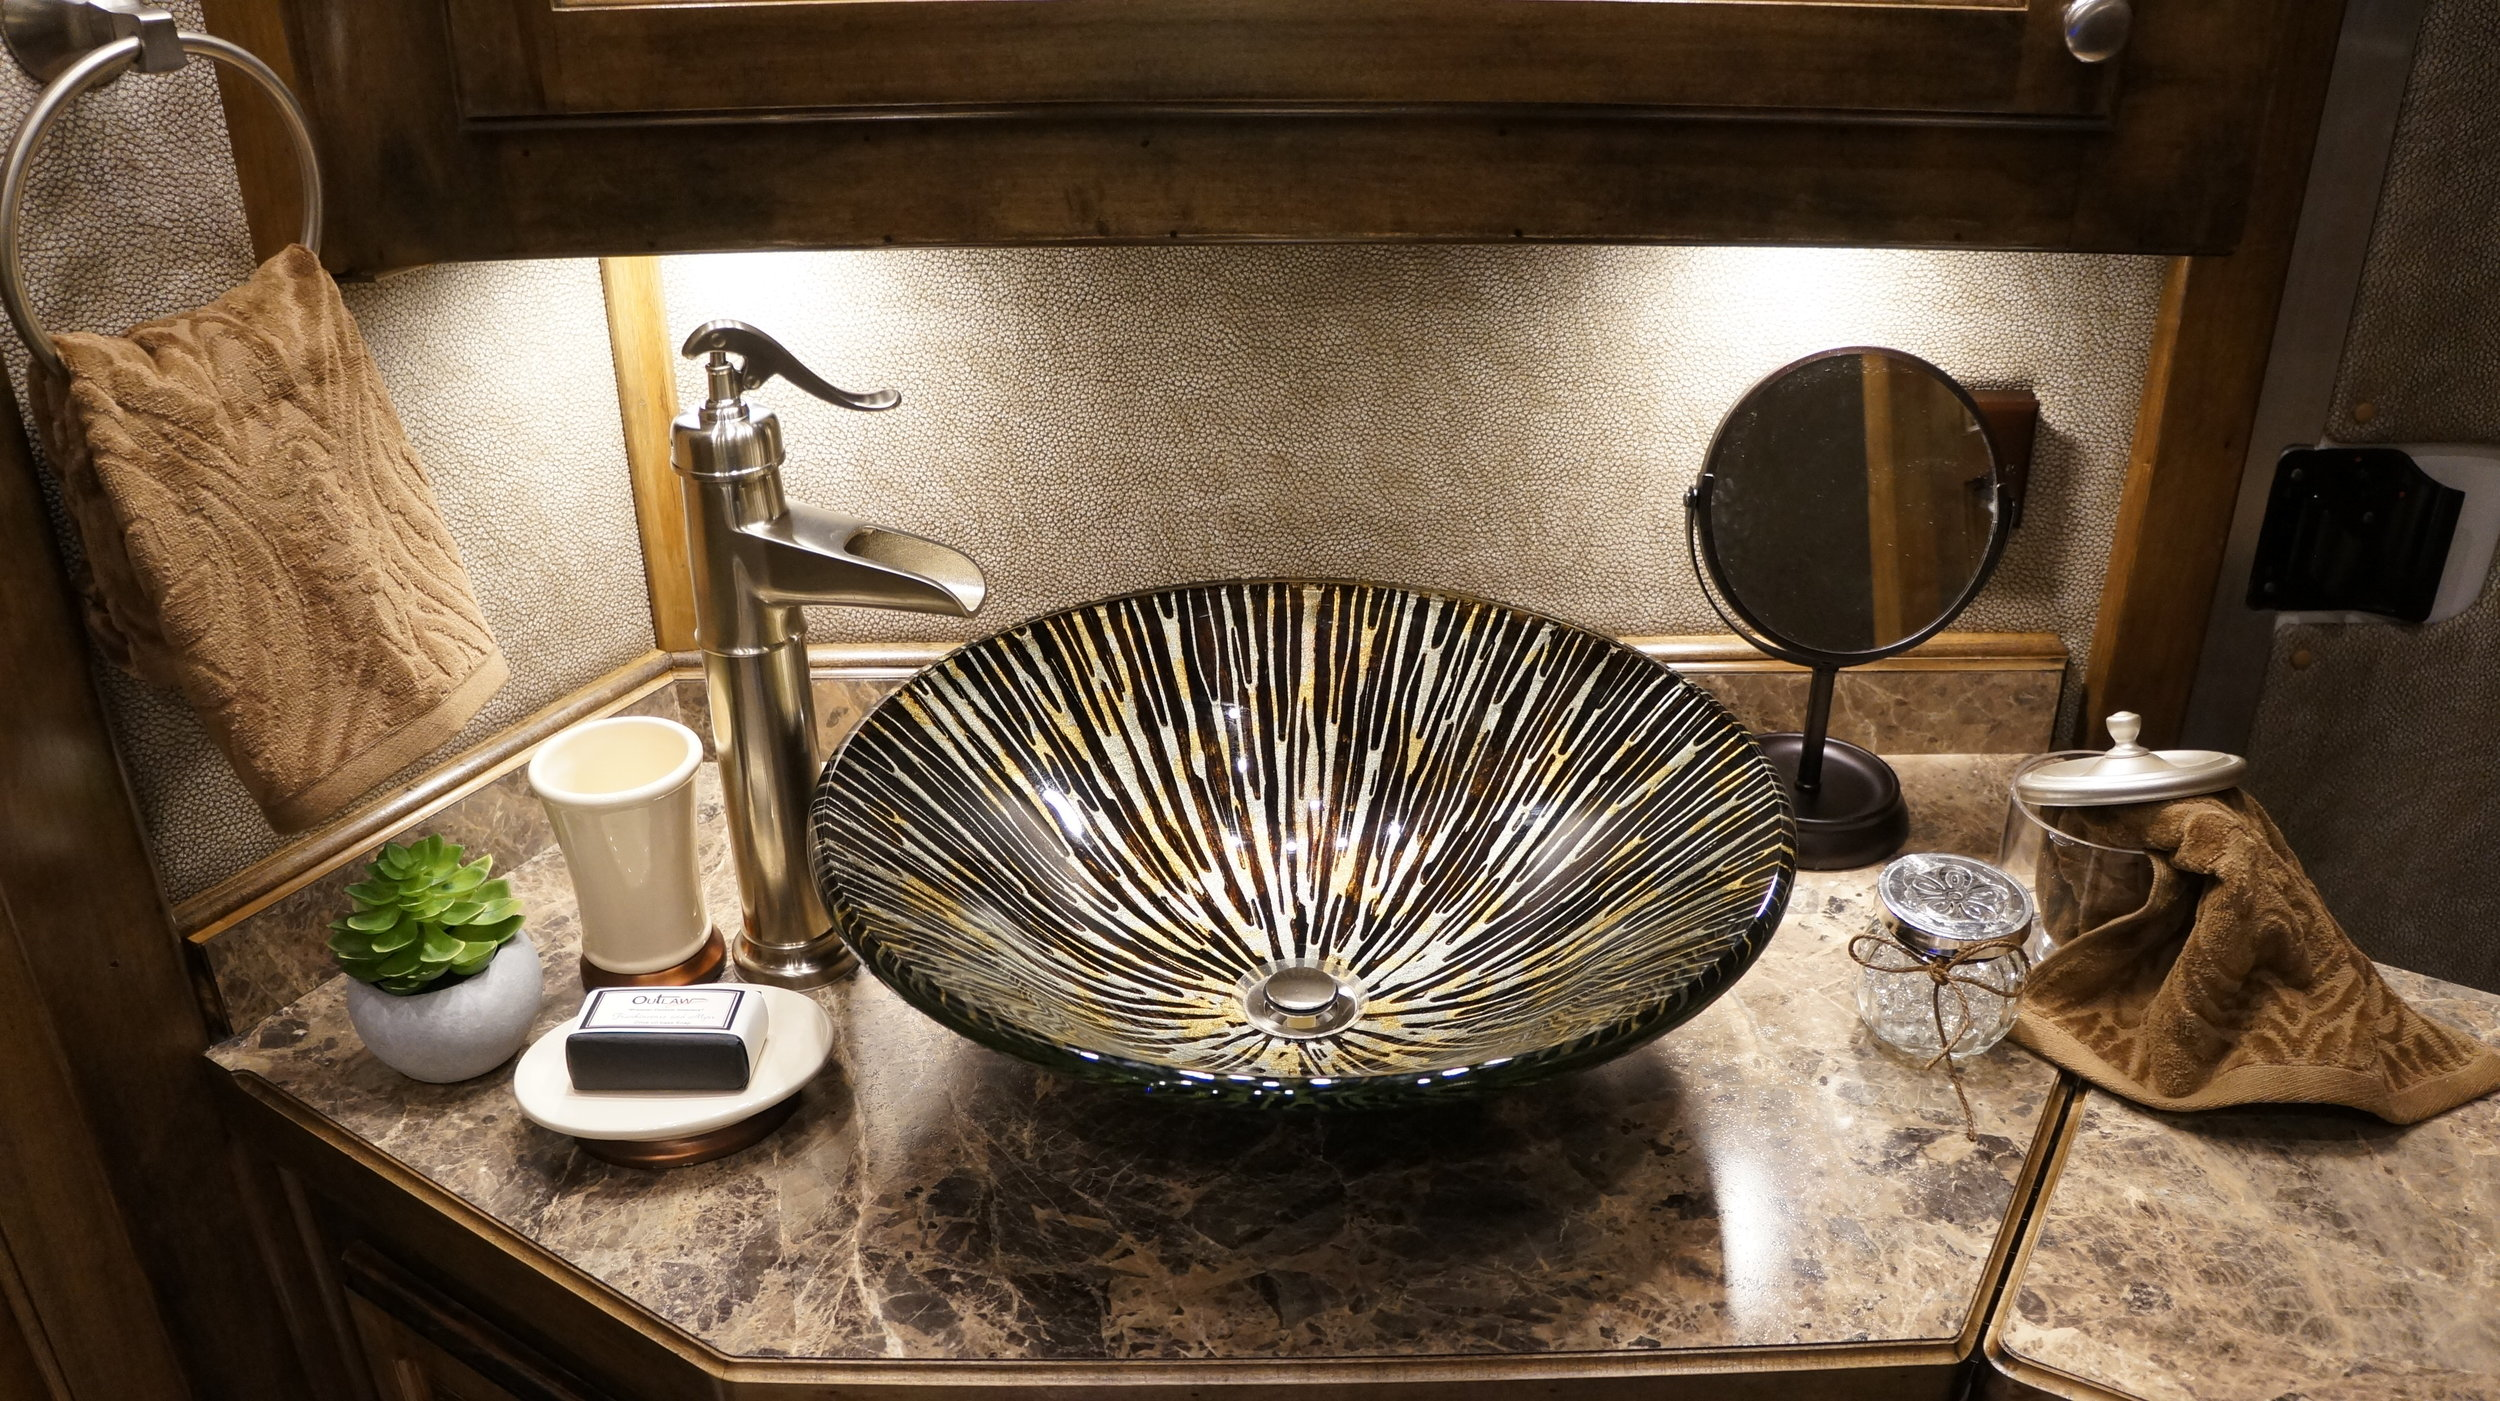 Vessel Sink with Nickel Faucet